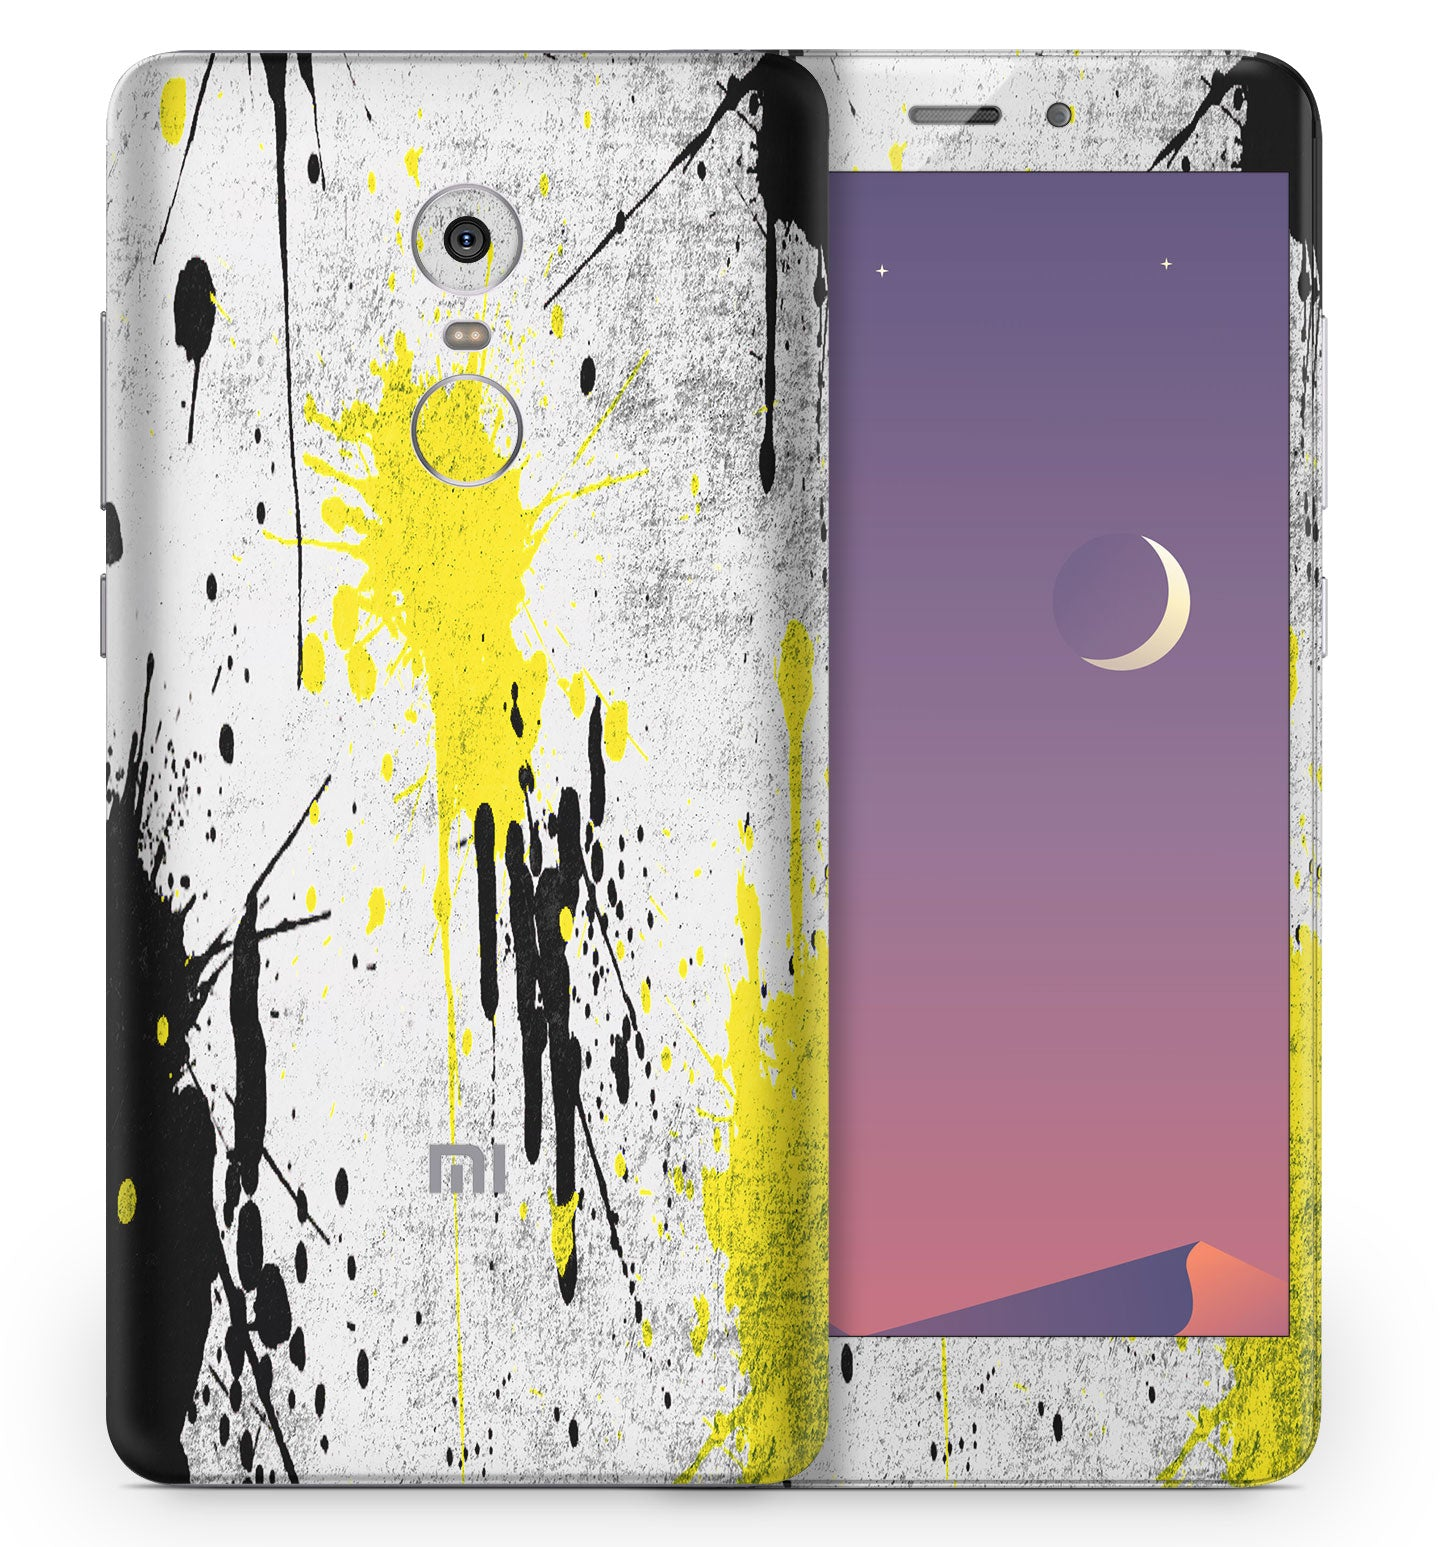 Products Paint Splatter 4 Glitter Bling Wrap Skin For Xiaomi Mi Max Redmi Note Phone Skins